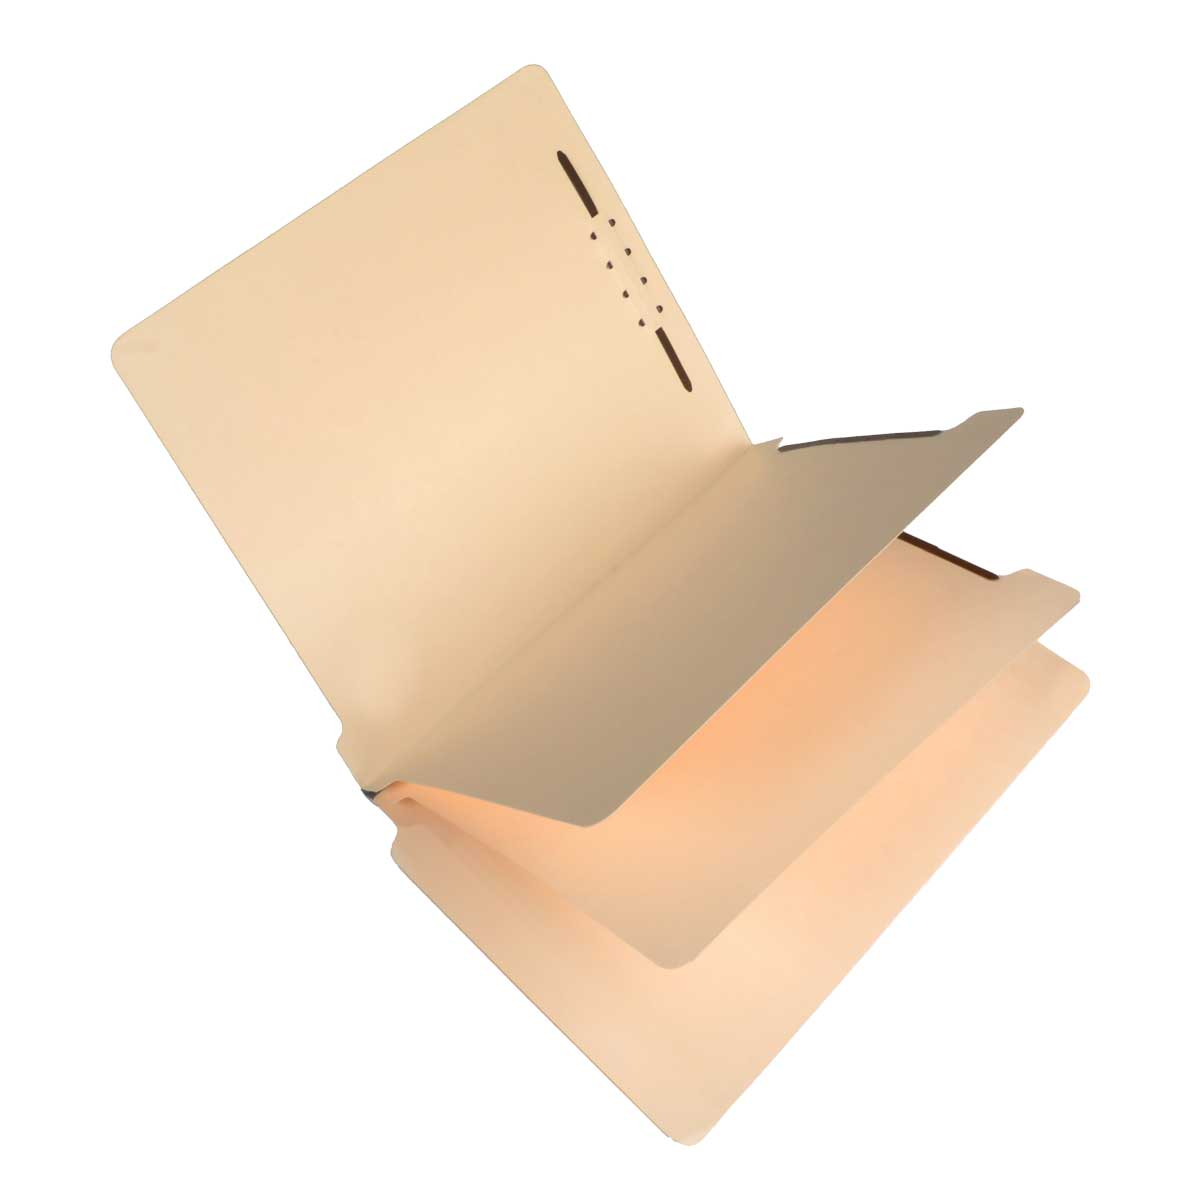 S-59730 - SJ Paper S59730 Match 15 Pt. Manila Classification Folders, Full Cut End Tab, Legal Size, 2 Dividers (Box of 25)